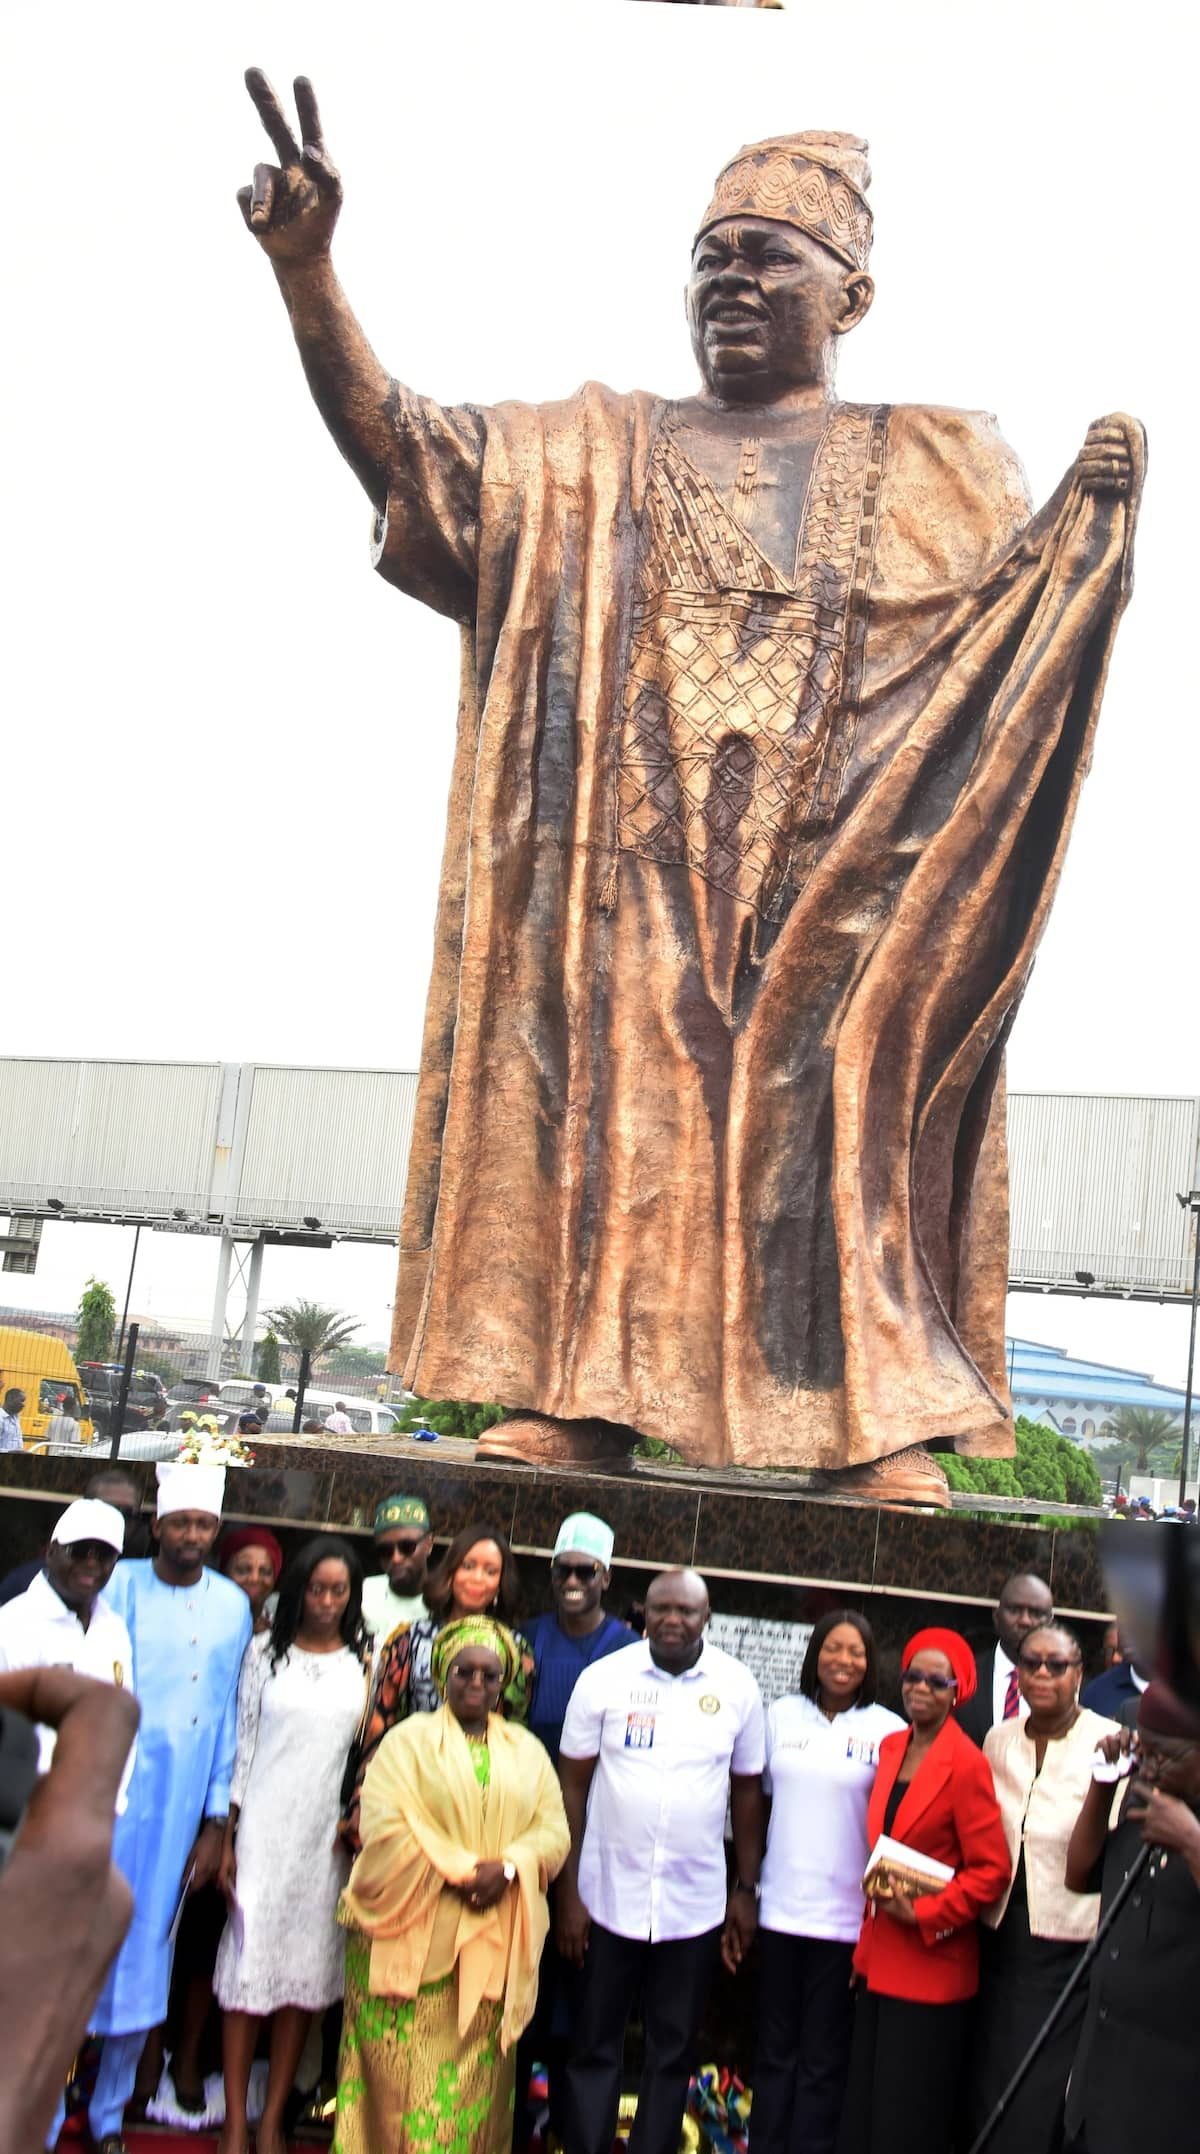 Celebration in Lagos as Ambode unveils massive statue to honour Abiola, family reacts